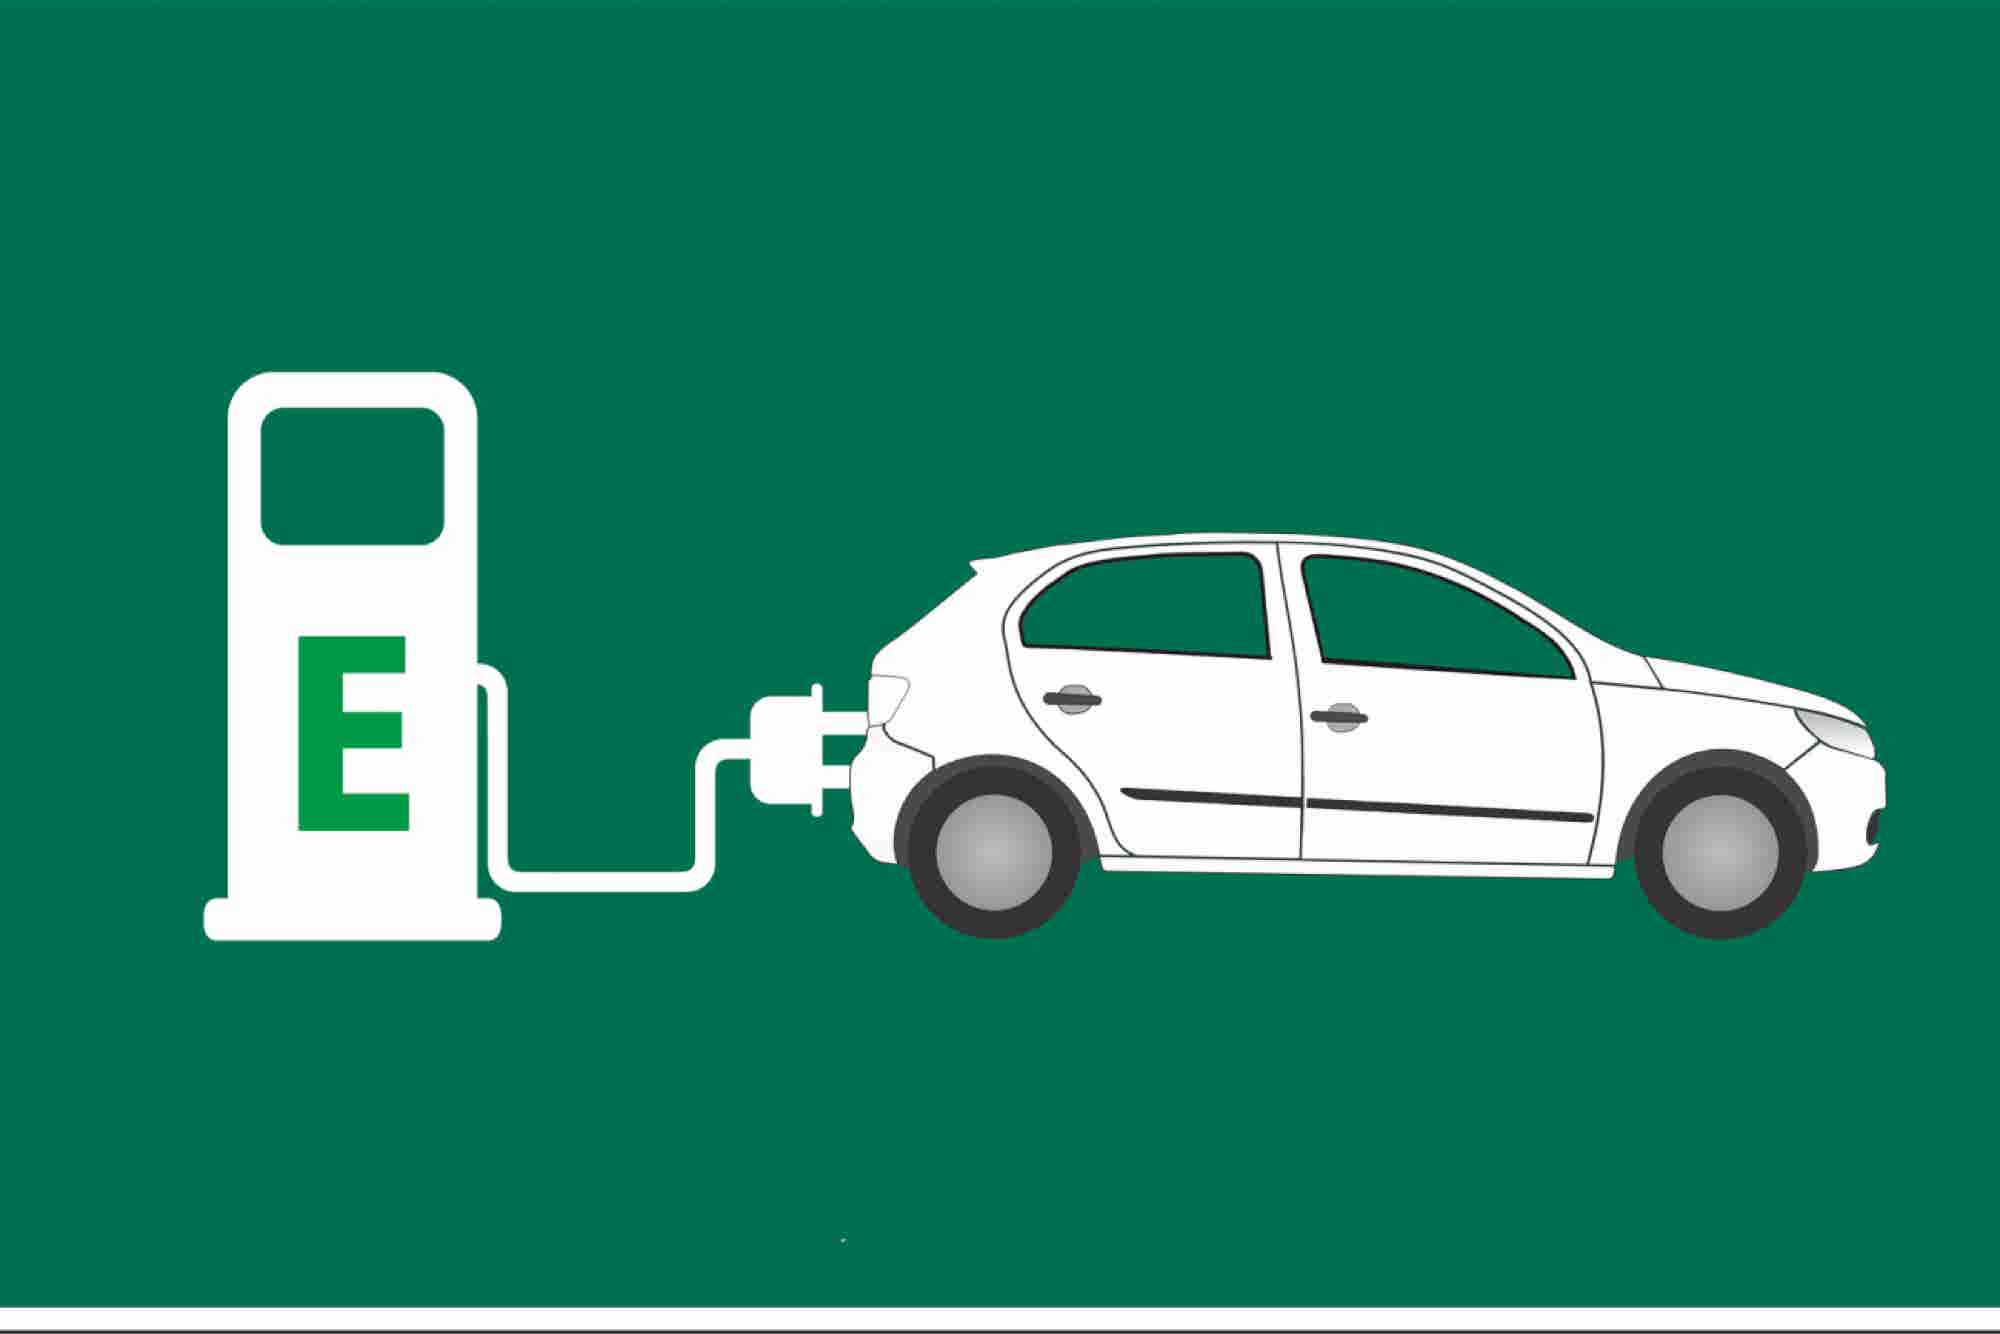 Thinking of Buying an Electric Car? Indian Government has an Offer You Can't Refuse